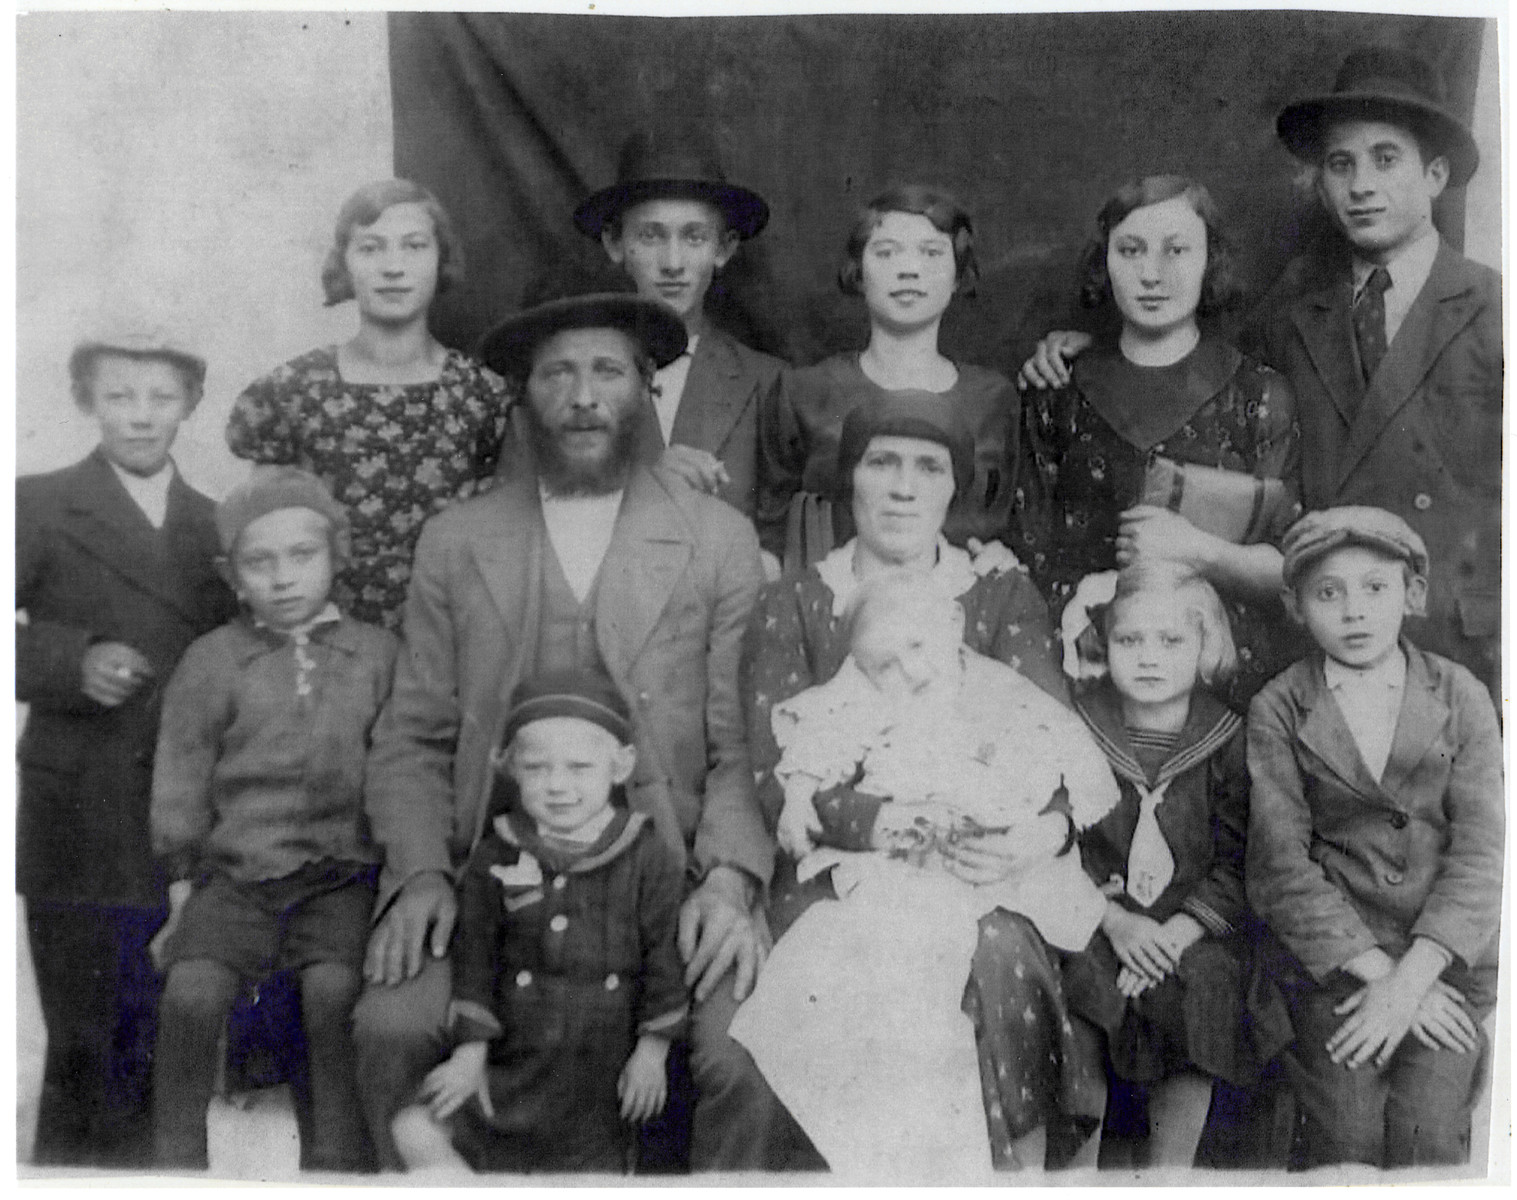 """Portrait of a large, religious Transcarpathian Jewish family.  The oldest daughter had moved to Holland and just gotten engaged.  She came home to visit her family and arranged for the photo to be taken to show her fiance.  Pictured are the Mechlovitz family.  Seated left to right are Baruch, Chaim, (name of child between his legs is unknown), Etel holding a baby (name unknown), Pearl and Alter.  Standing are Moshe, Baruch Zelda, Duvid Meyer, Chia Sura (Chiam's niece), Chia Hensa and Shia.   The farmer, Chaim Simcha Mechlowitz, became immortalized as the farmer in Roman Vishniac's collection """"A Vanished World."""""""